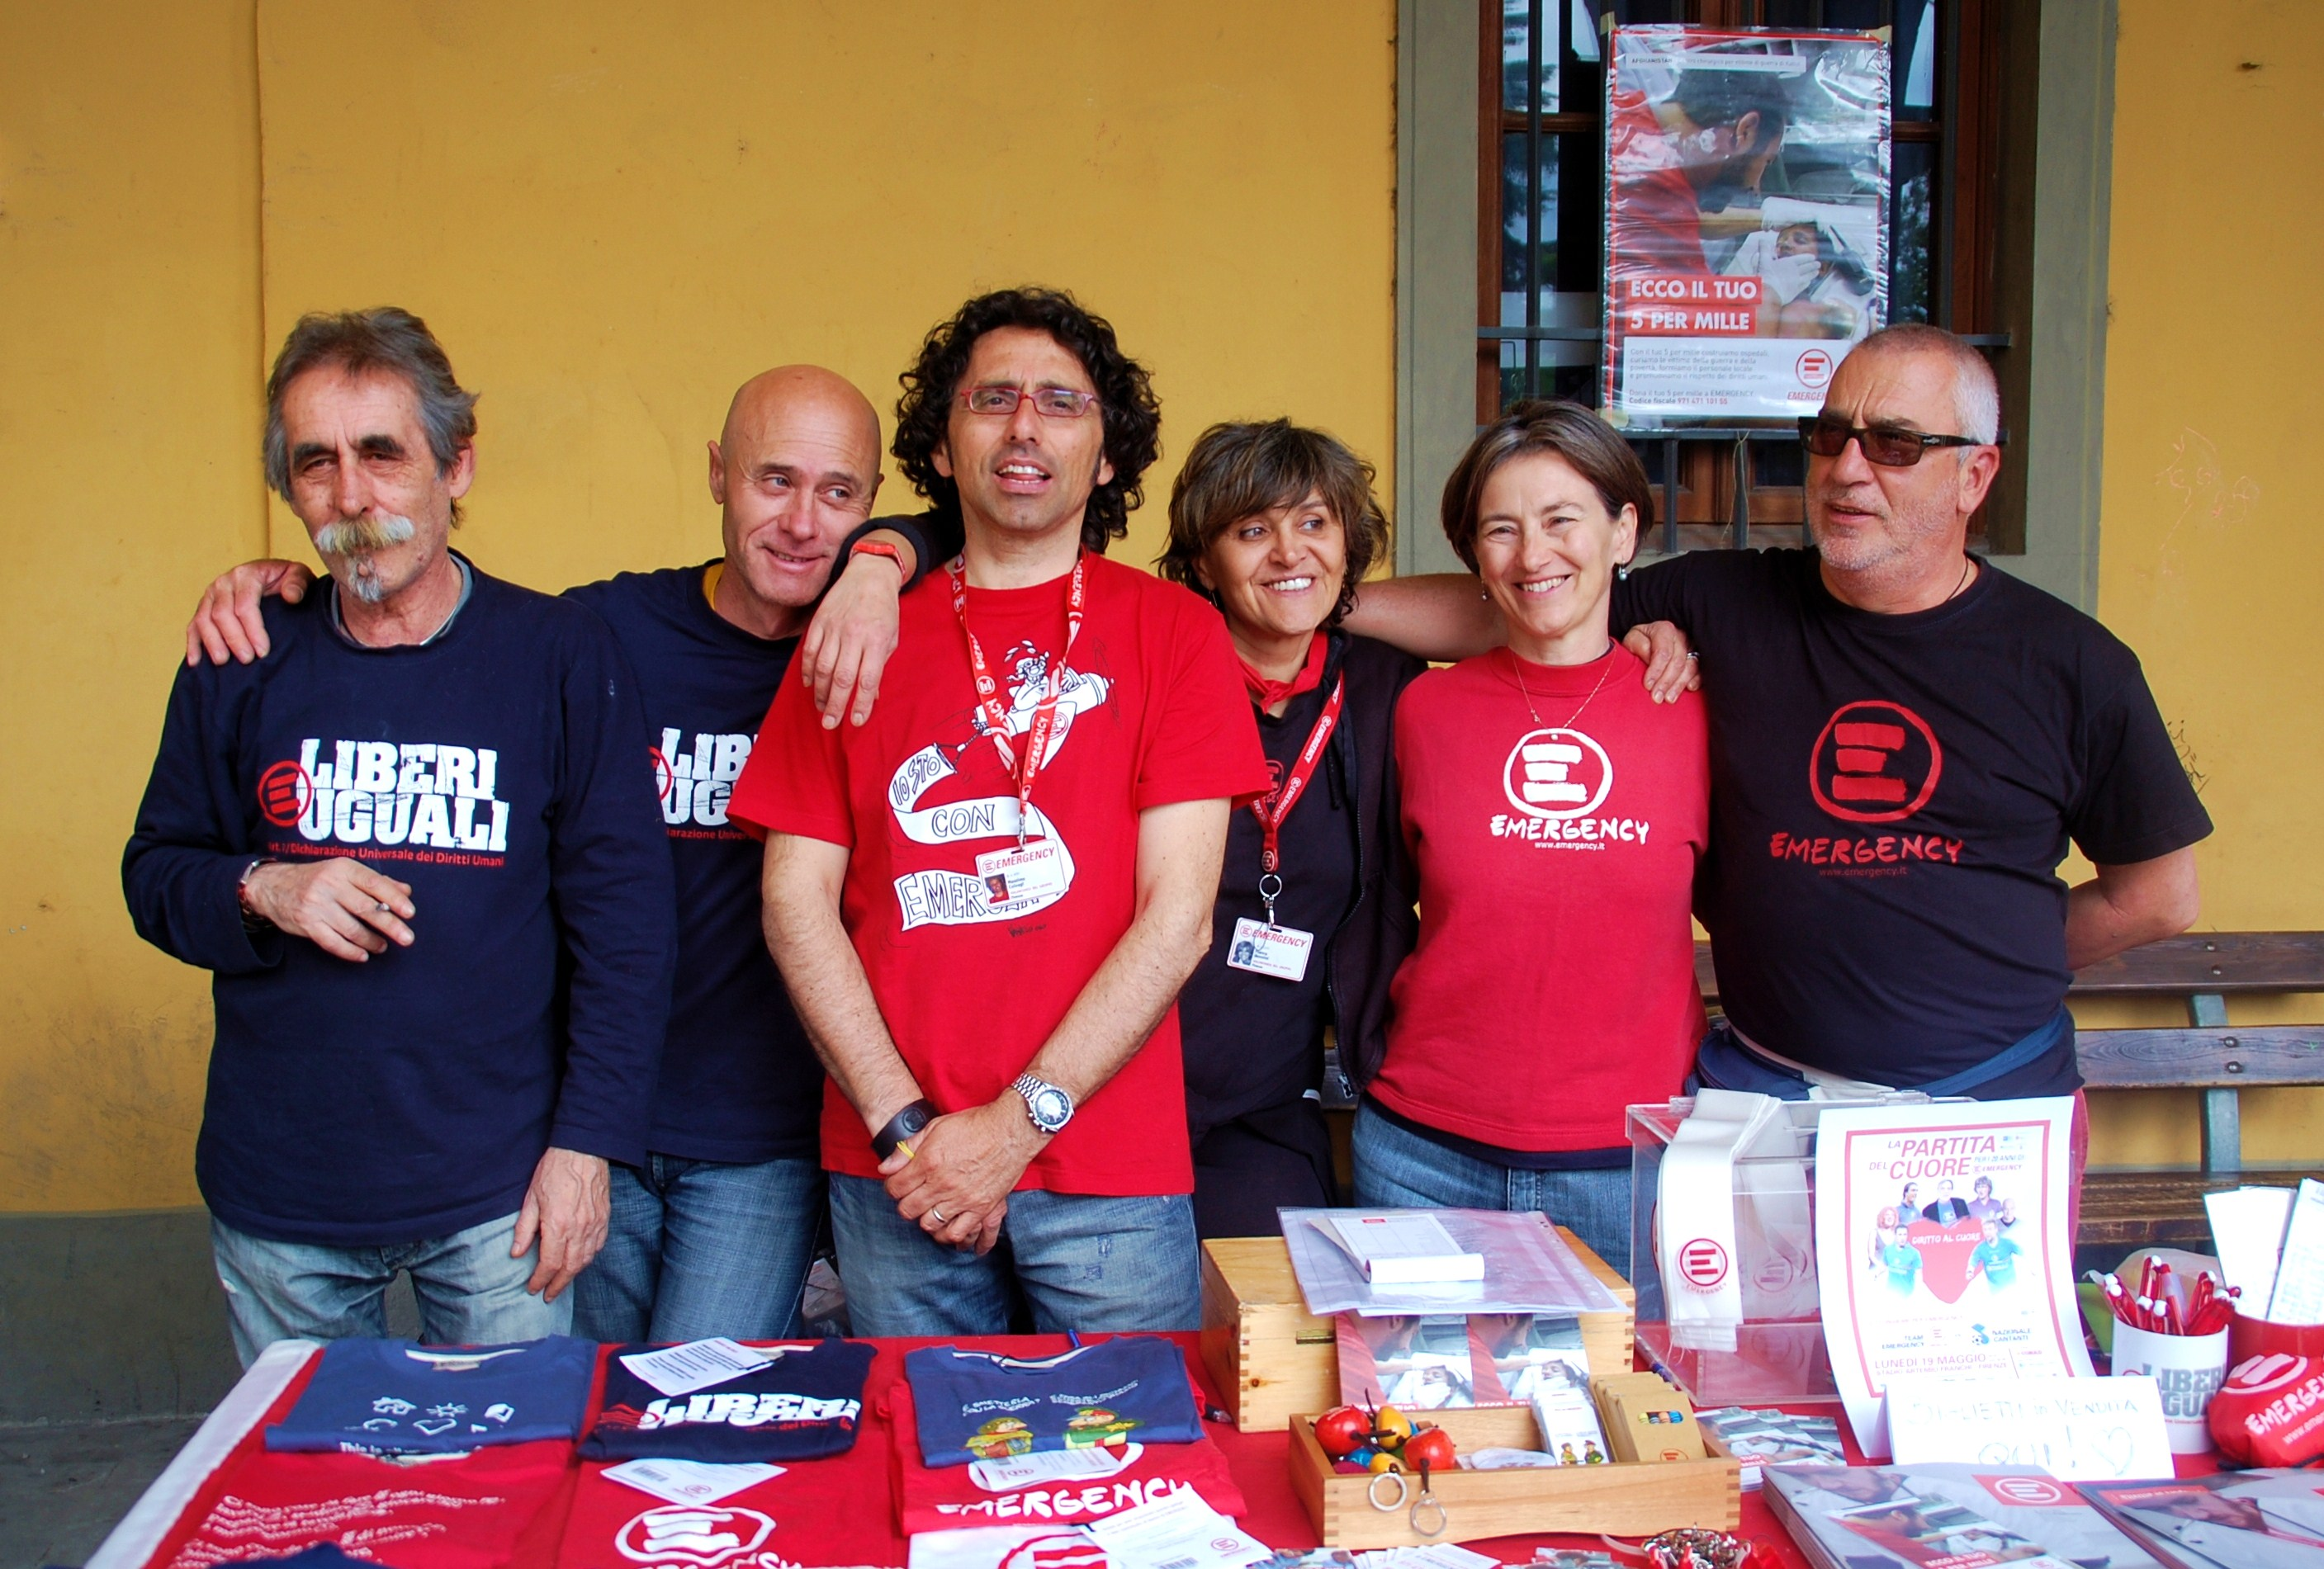 I volontari di Emergency Firenze